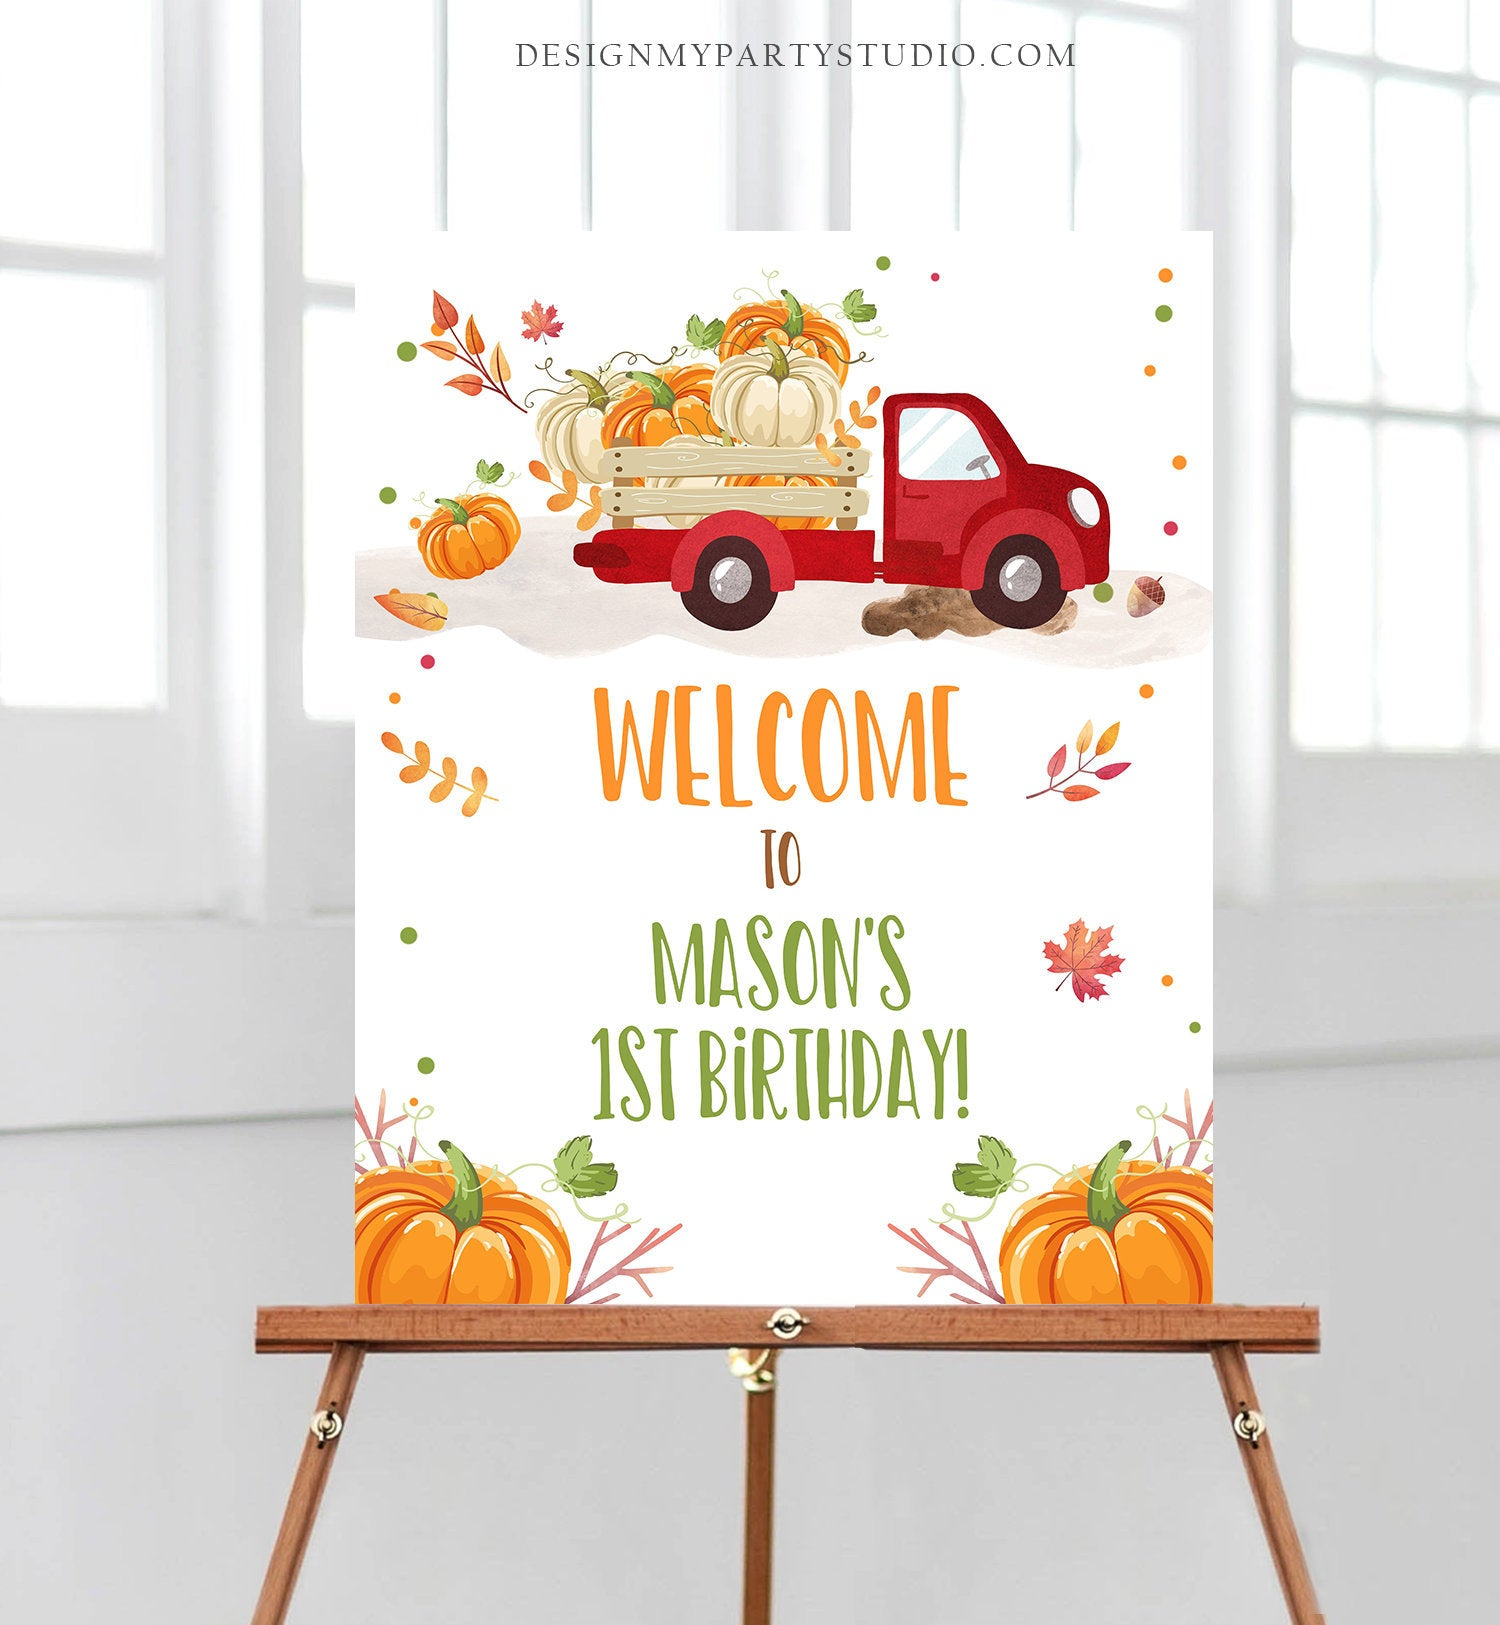 Editable Pumpkin Welcome Sign Pumpkin Truck Birthday Fall Baby Shower Fall Party Welcome 1st Birthday Boy Corjl Template PRINTABLE 0153